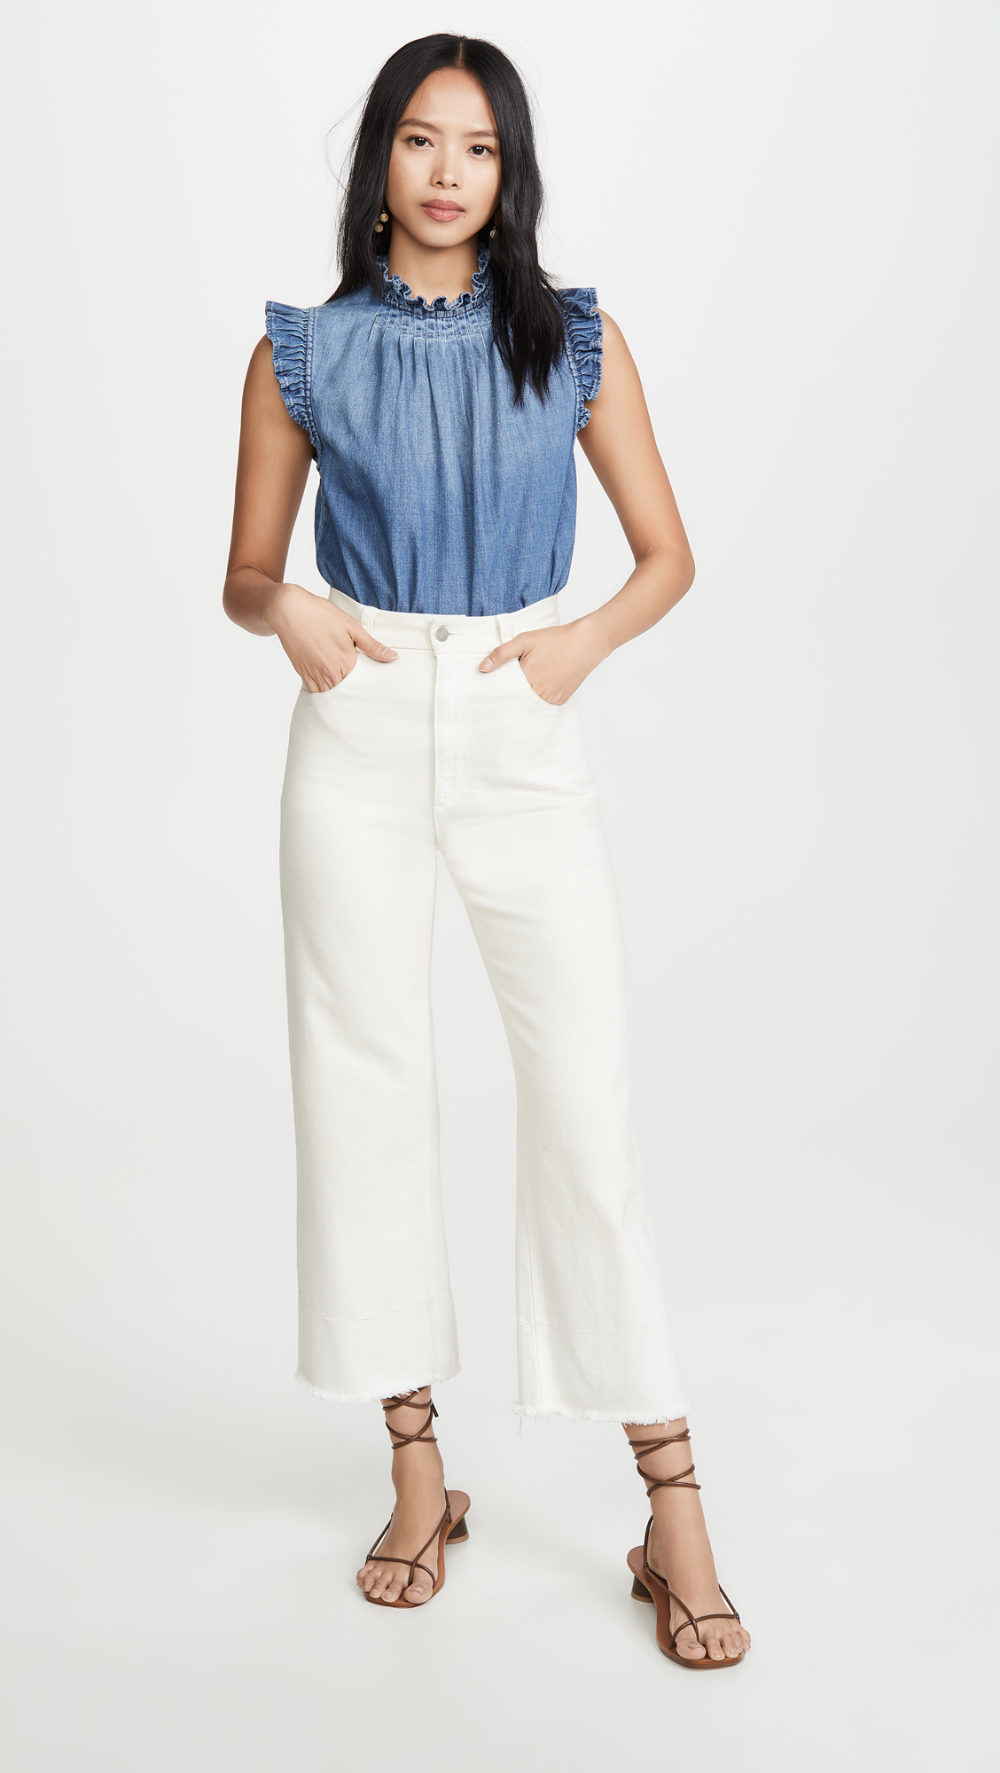 FRAME Ruffle Denim Sleeveless Top in 2020 Sleeveless top